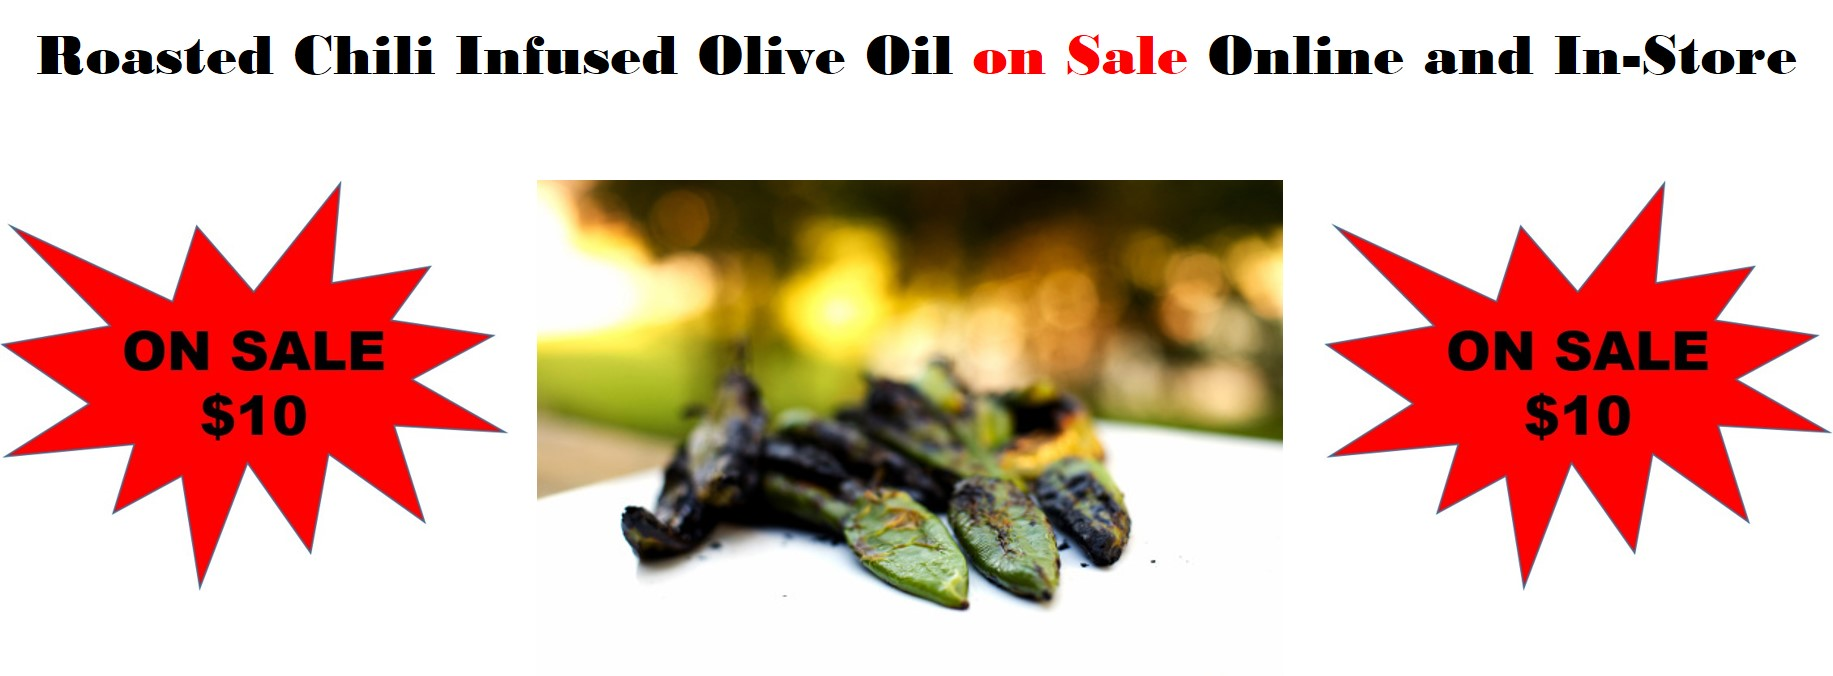 roasted-chili-oil-on-sale.jpg